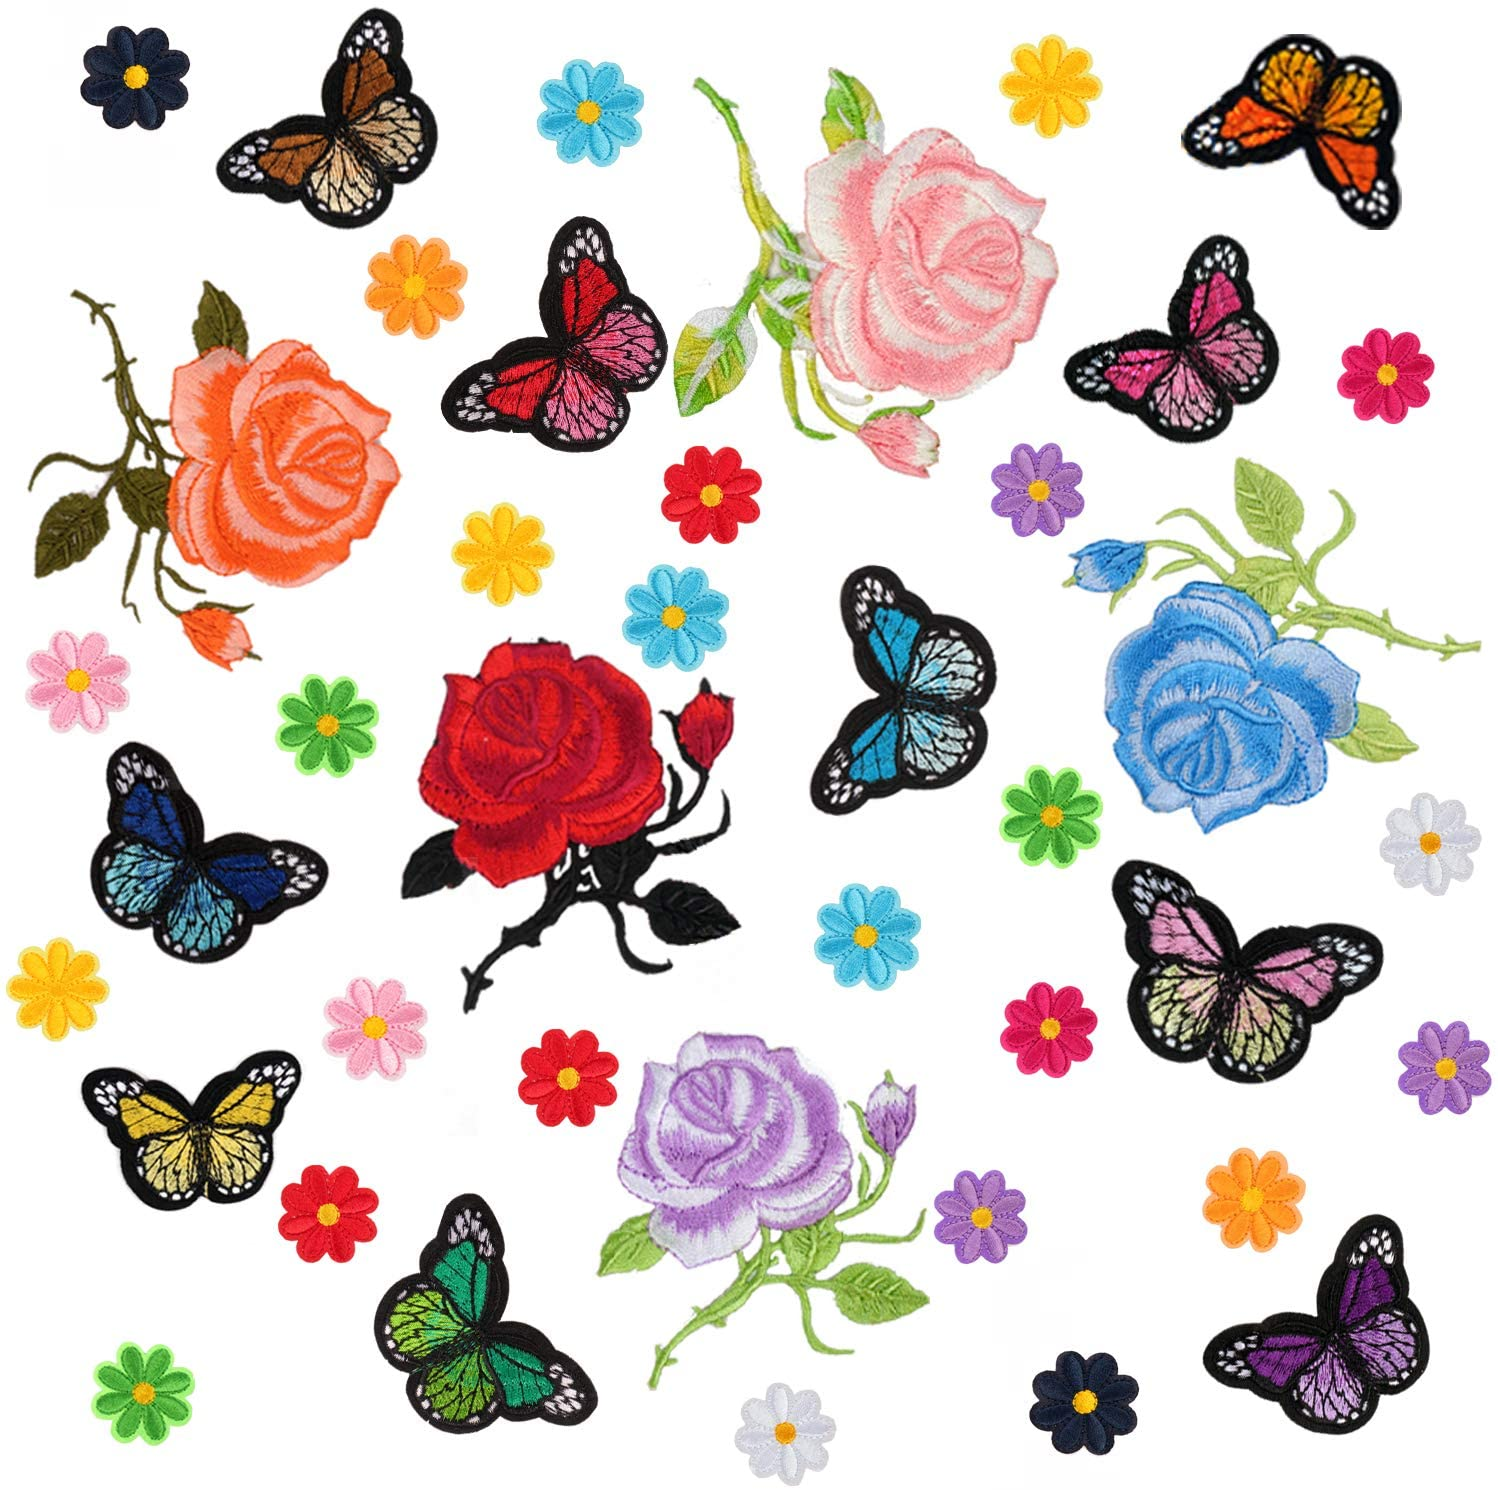 Haimay 40 Pieces Flowers Butterfly Iron on Patches Embroidery Applique Patches for Arts Crafts DIY Accessory,Jeans,Clothing,Bags